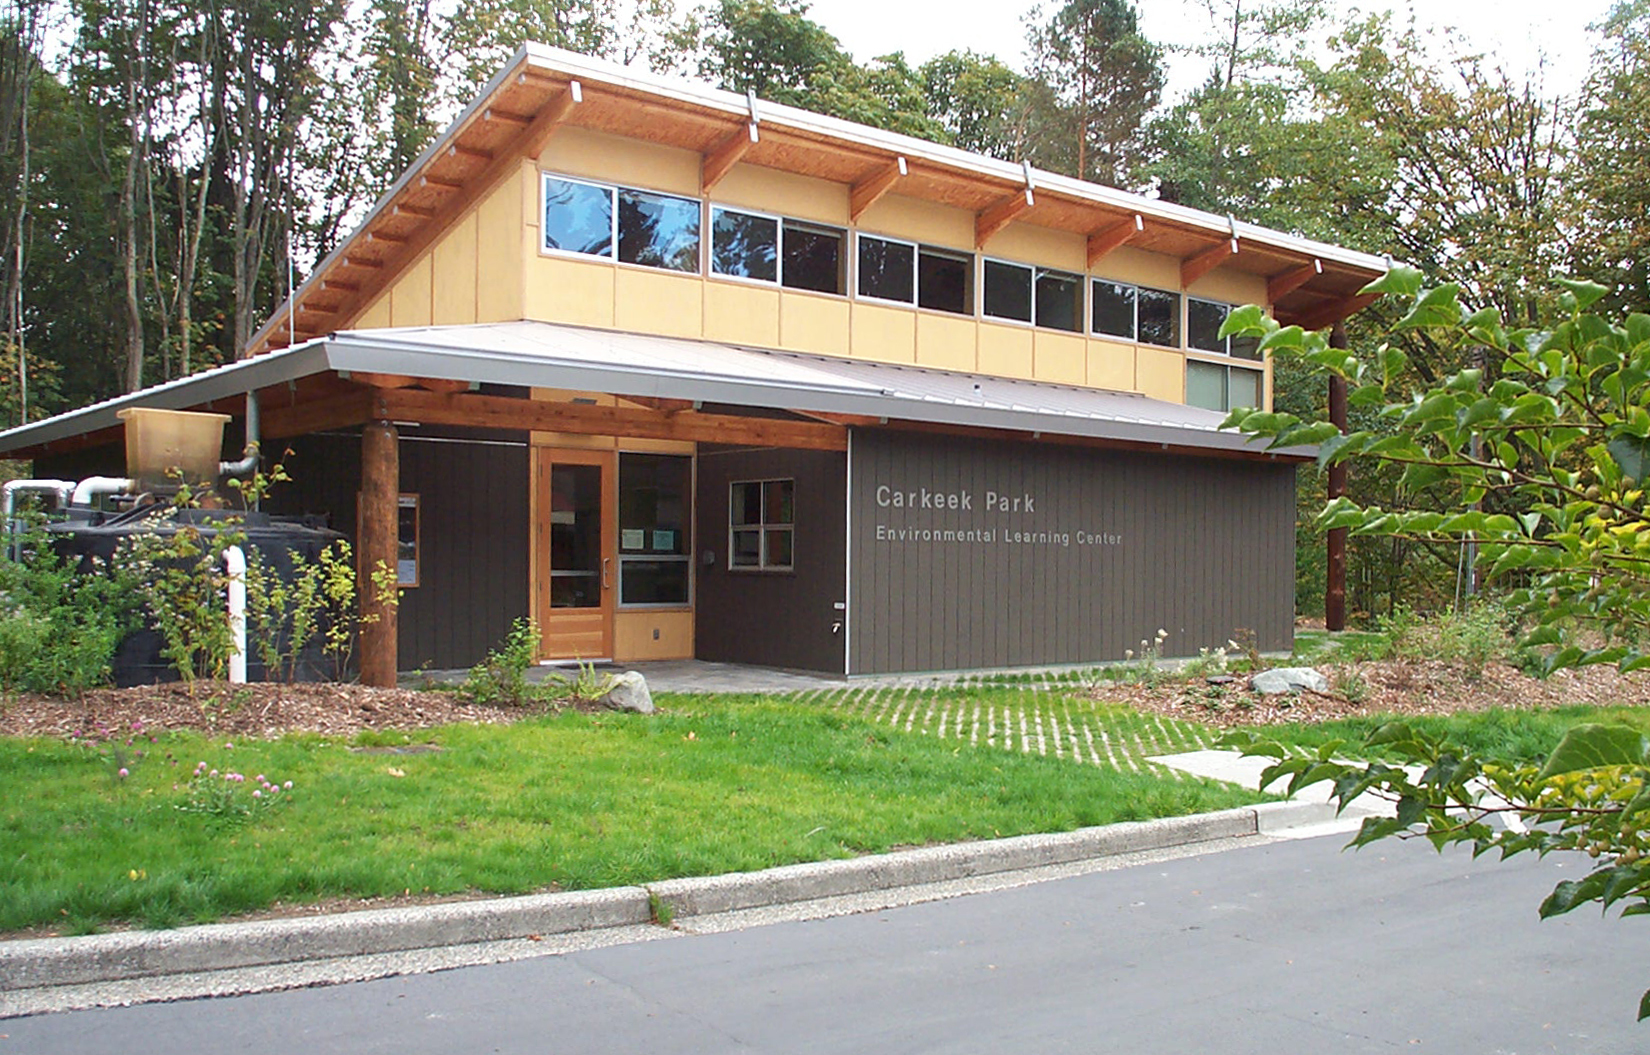 The Carkeek Park Environmental Learning Center is LEED-certified